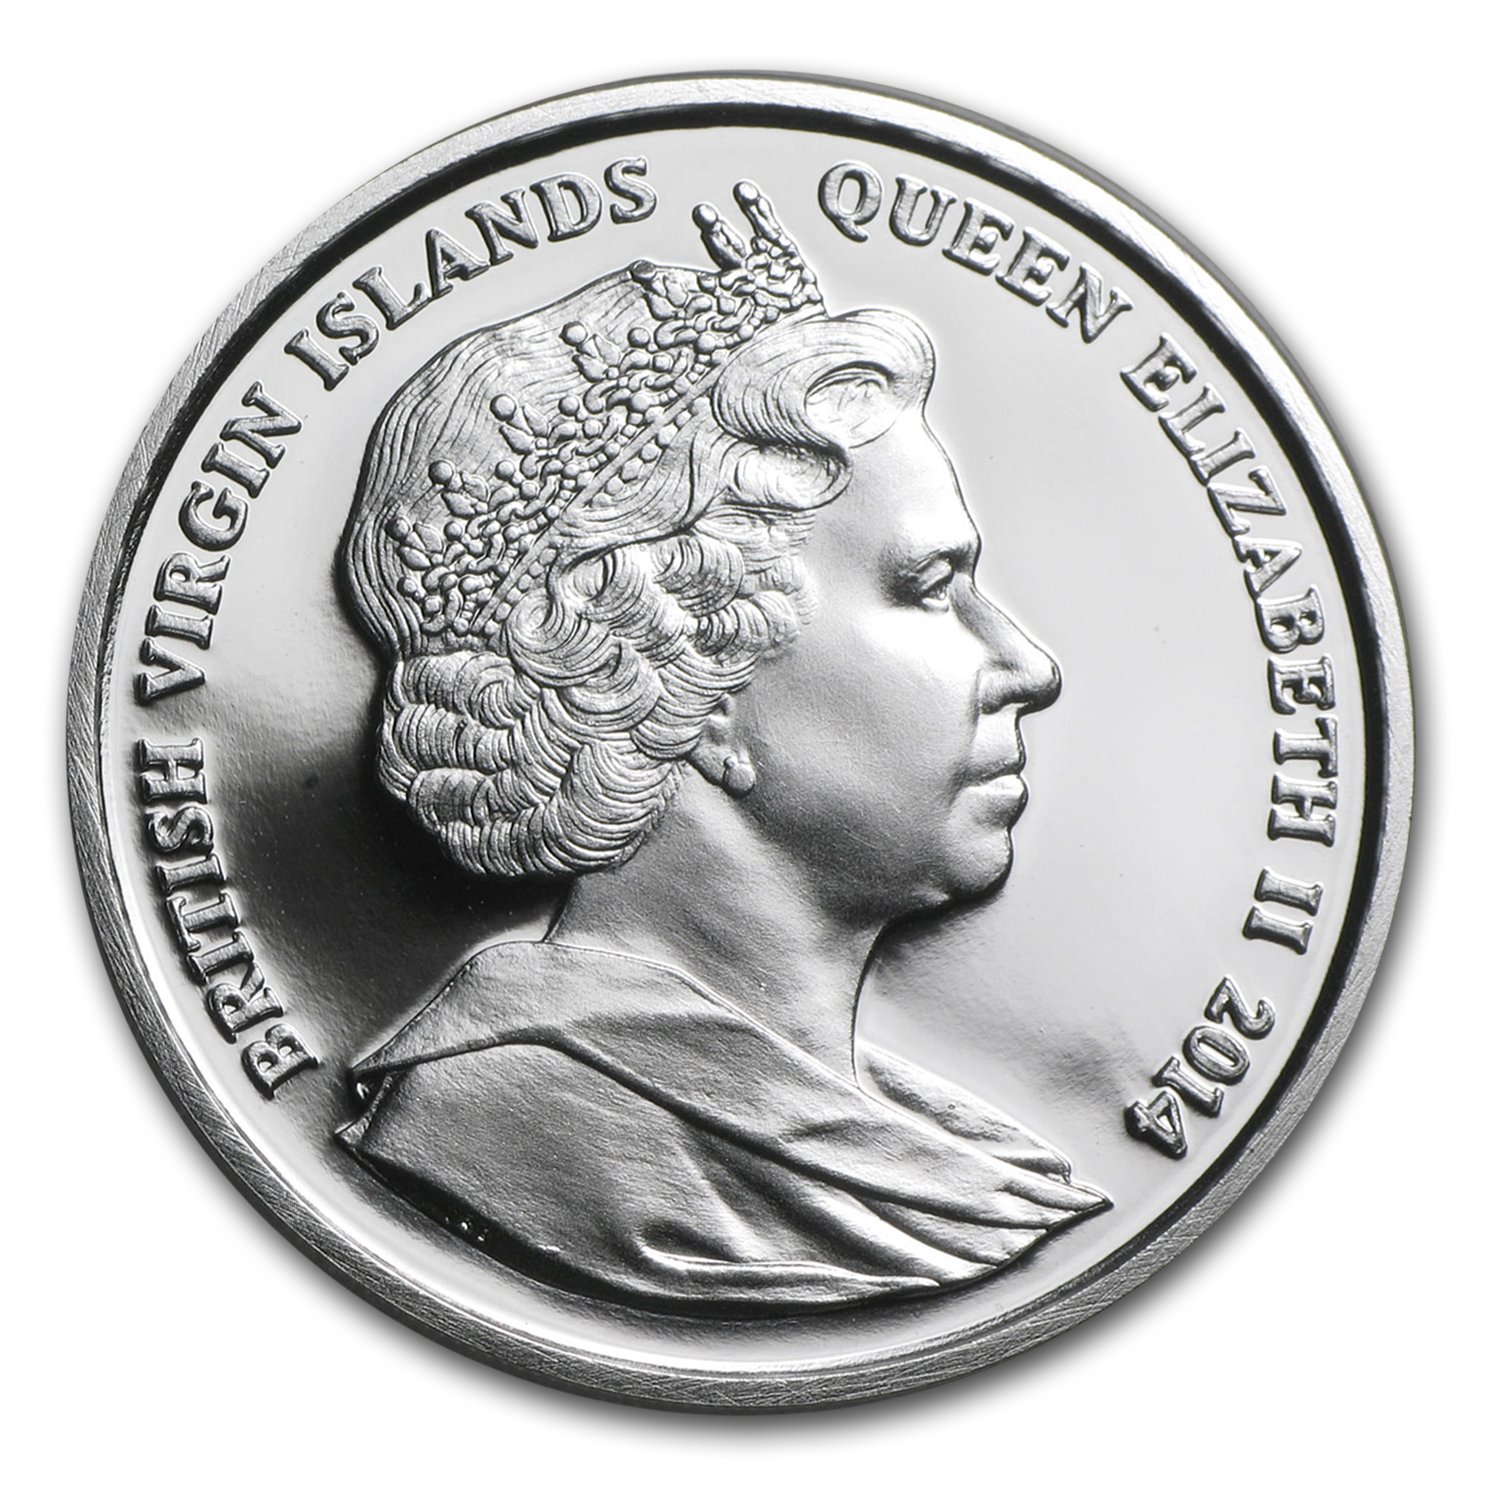 2014 British Virgin Islands Silver Baby Coin